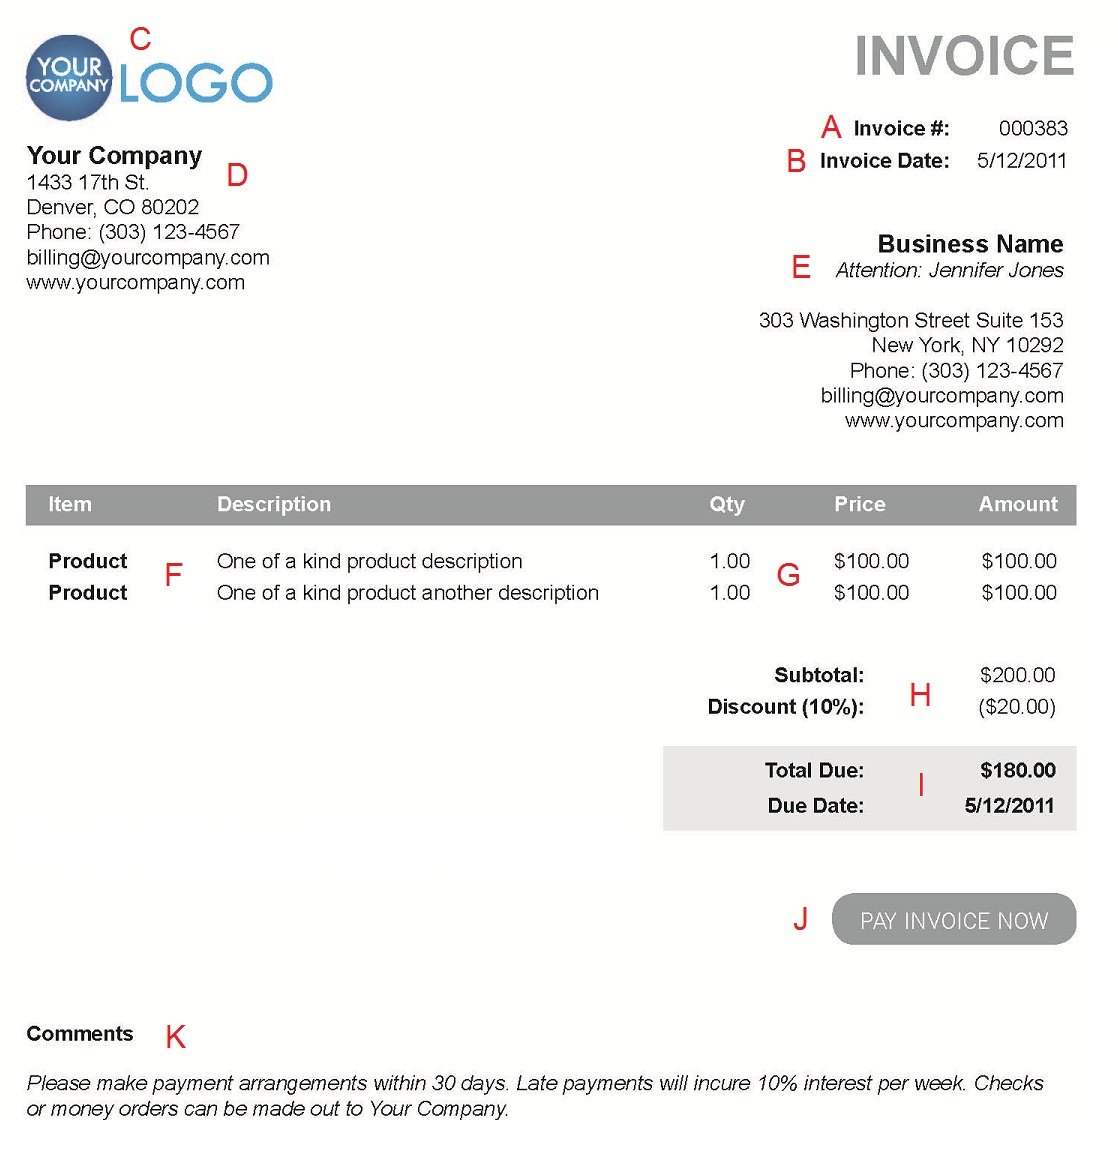 Imagerackus  Surprising The  Different Sections Of An Electronic Payment Invoice With Gorgeous A  With Easy On The Eye Receipt For Money Received Template Also Jet Blue Receipt In Addition Reliance Life Insurance Payment Receipt And Sbi Life Online Premium Receipt As Well As What Does Return Receipt Mean In Email Additionally Money Receipt Format In Word From Paysimplecom With Imagerackus  Gorgeous The  Different Sections Of An Electronic Payment Invoice With Easy On The Eye A  And Surprising Receipt For Money Received Template Also Jet Blue Receipt In Addition Reliance Life Insurance Payment Receipt From Paysimplecom